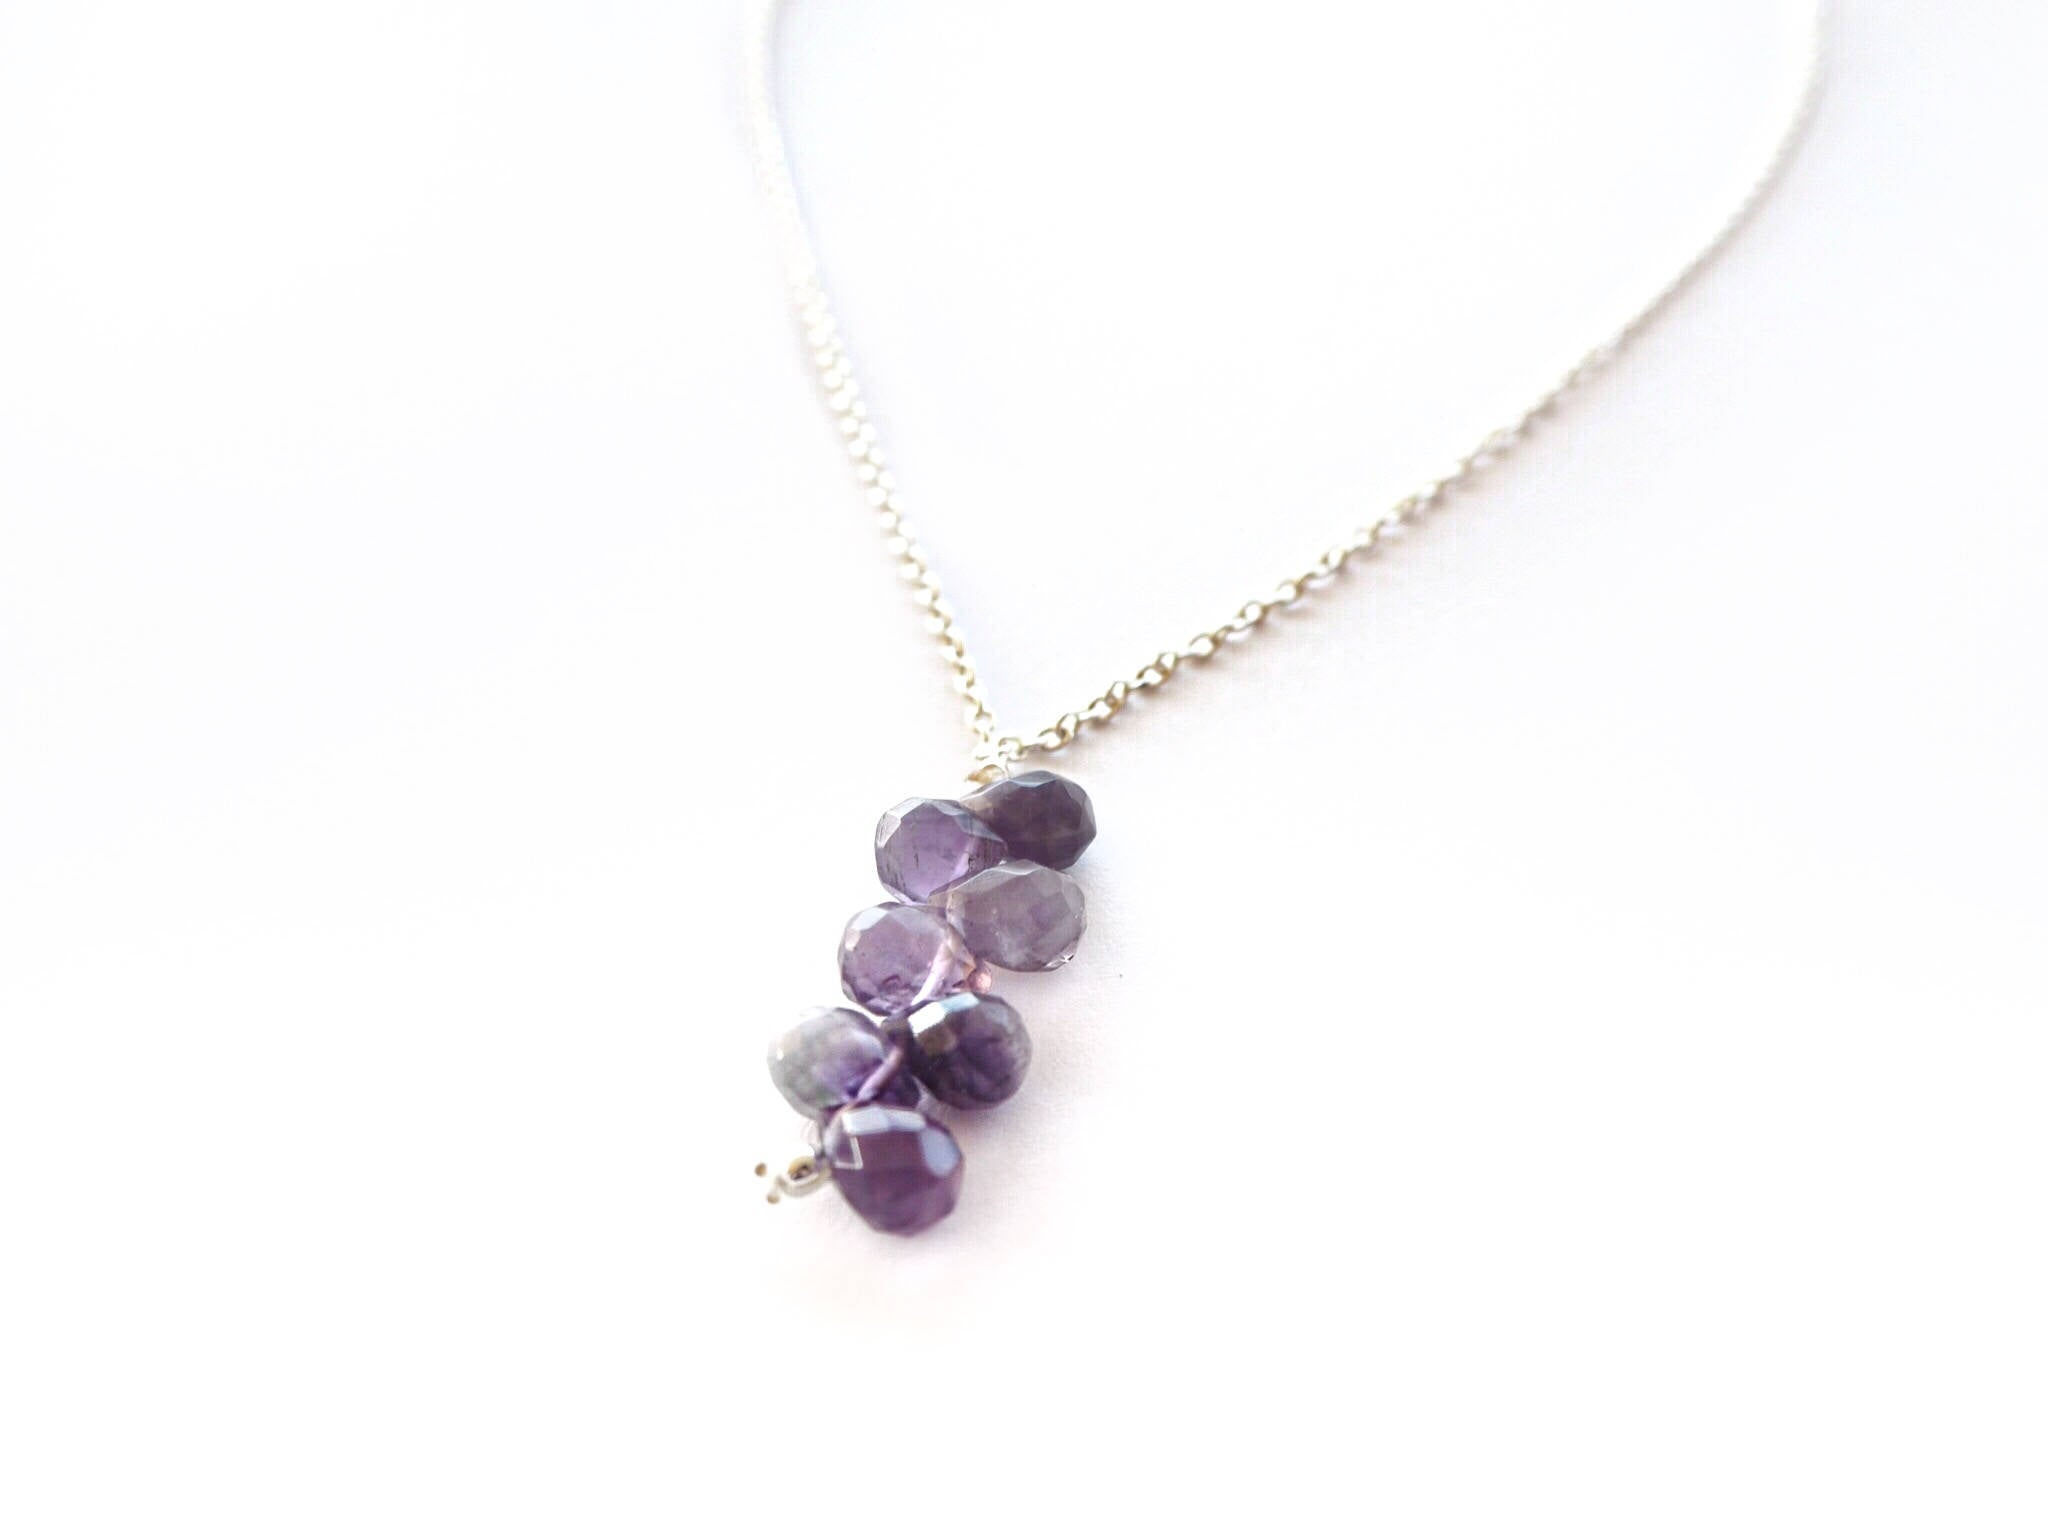 Amethyst - Silver chain necklace with amethyst quartz briolettes pendant